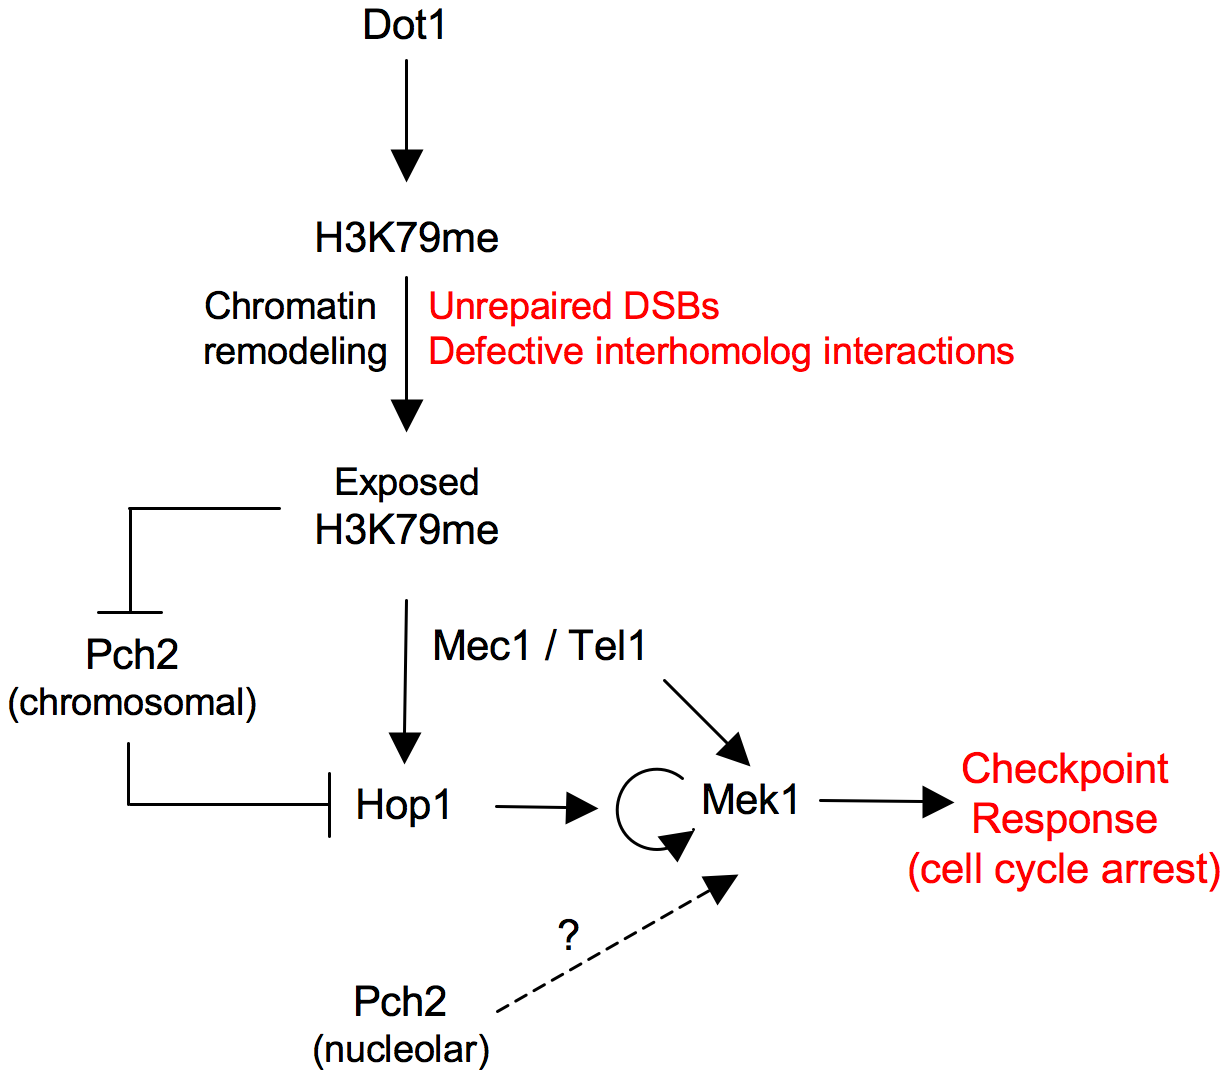 Model for Dot1 function in the meiotic recombination checkpoint.